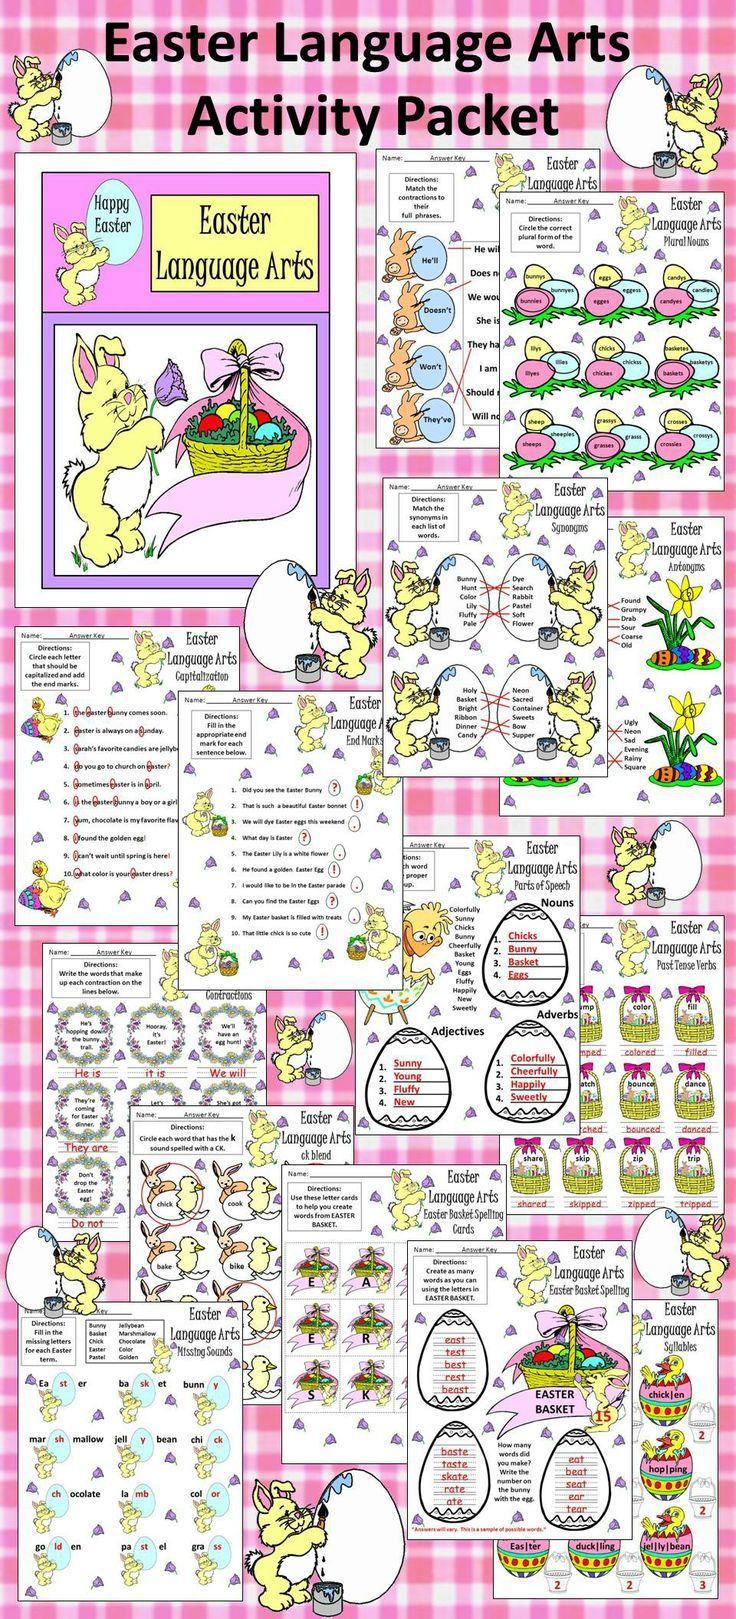 worksheet Fun Language Arts Worksheets 17 bilder om tpt language arts lessons pinterest common easter activity packet this colorful provides many exercises with a fun